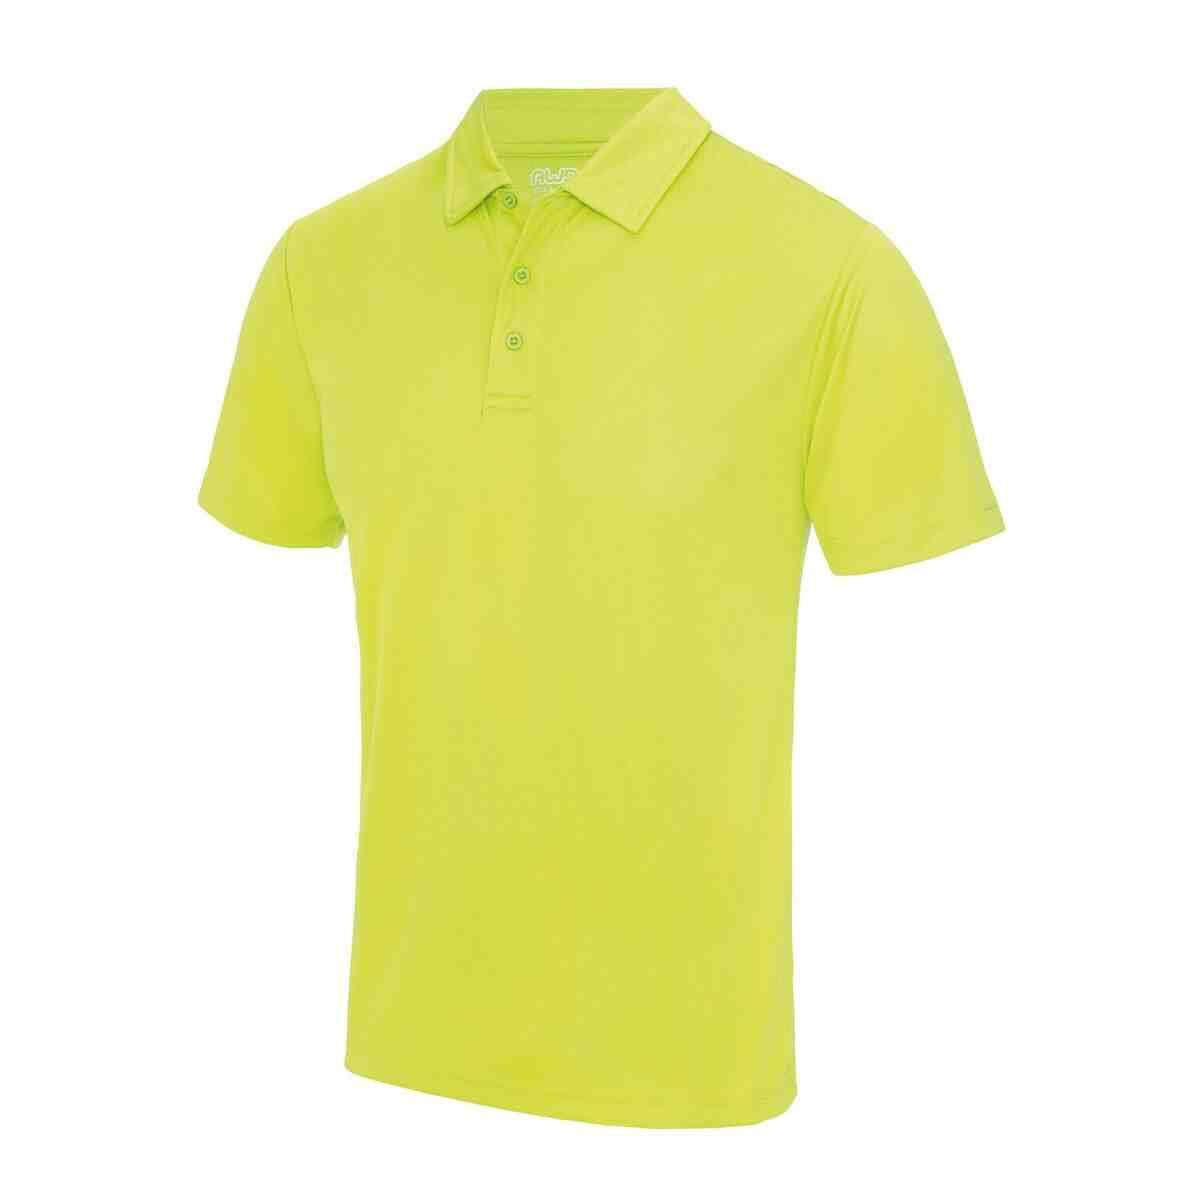 Electric Yellow Poolside Polo Shirt